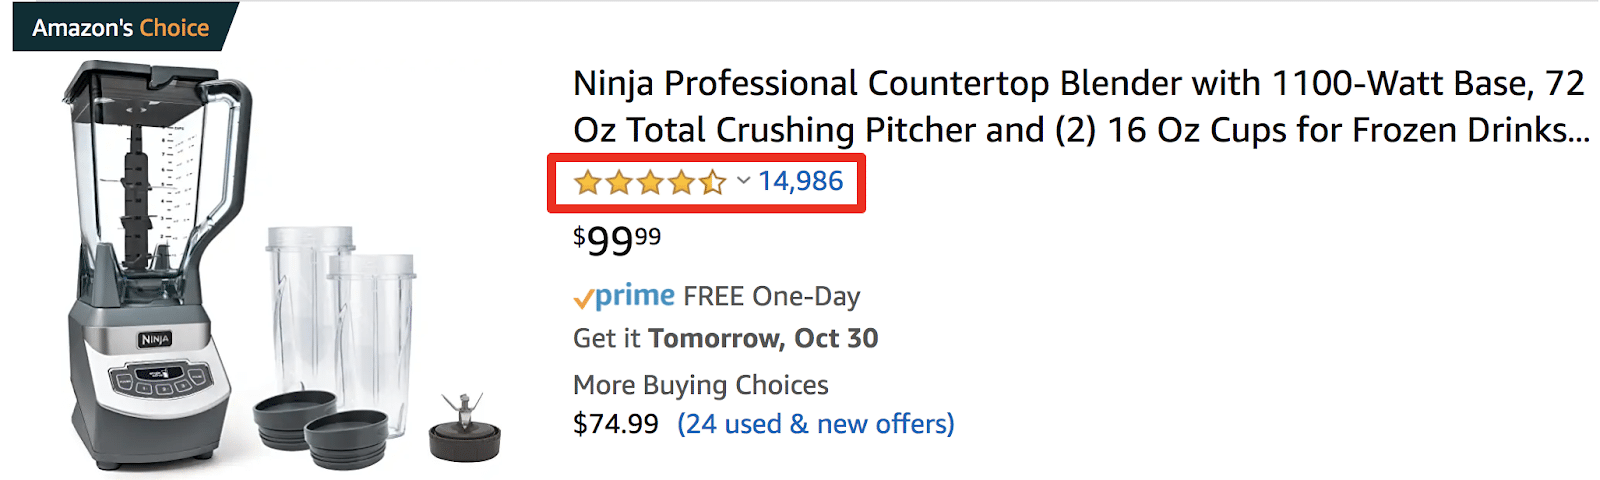 amazon customer review number example